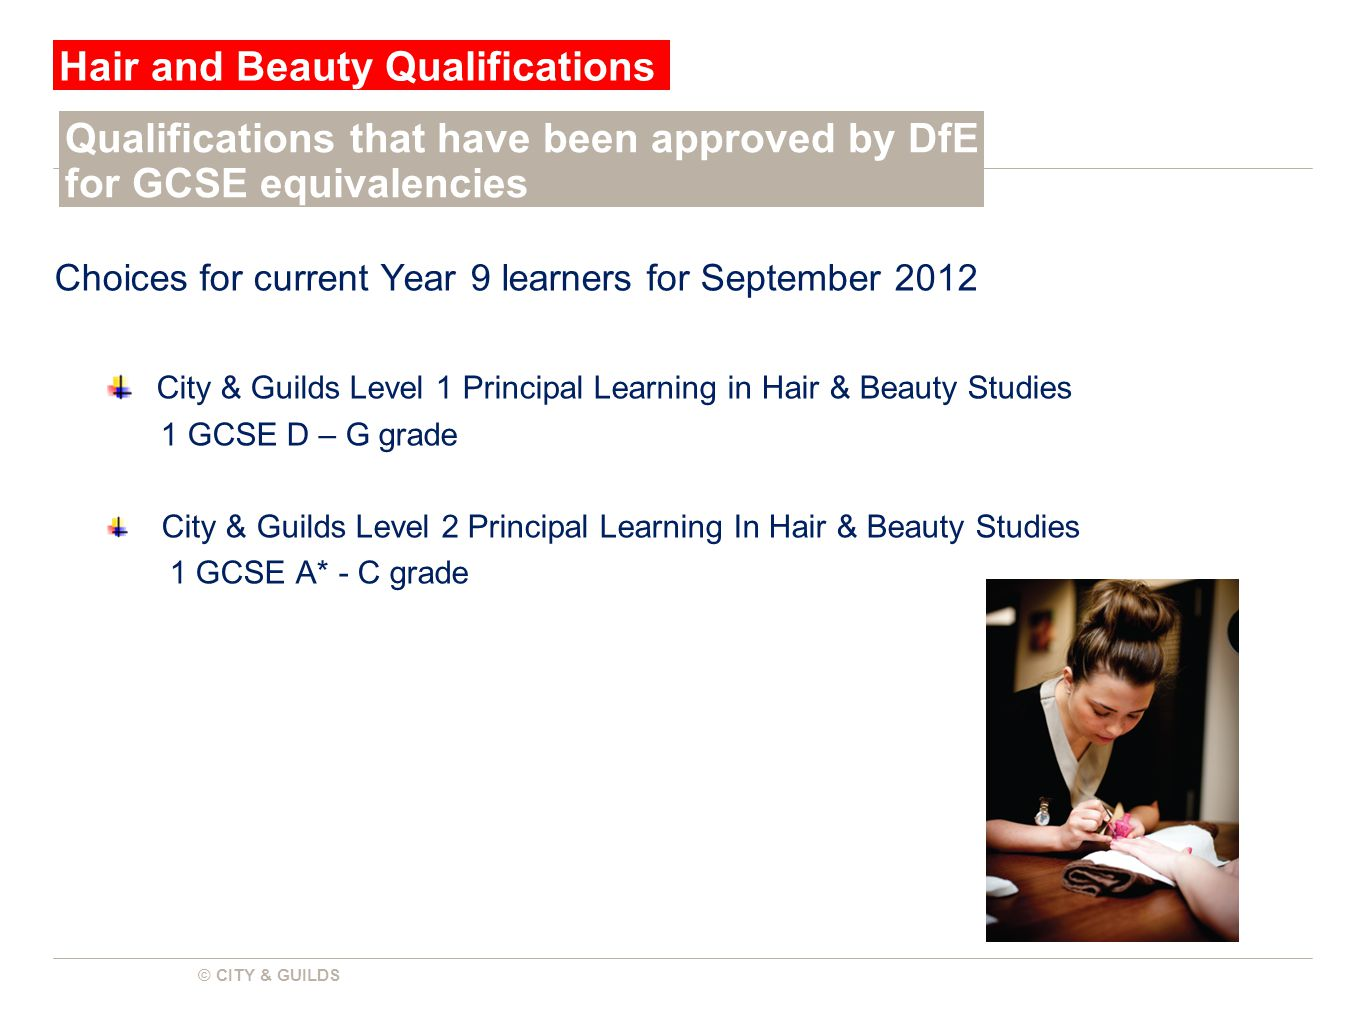 © CITY & GUILDS Choices for current Year 9 learners for September 2012 City & Guilds Level 1 Principal Learning in Hair & Beauty Studies 1 GCSE D – G grade City & Guilds Level 2 Principal Learning In Hair & Beauty Studies 1 GCSE A* - C grade Hair and Beauty Qualifications Qualifications that have been approved by DfE for GCSE equivalencies